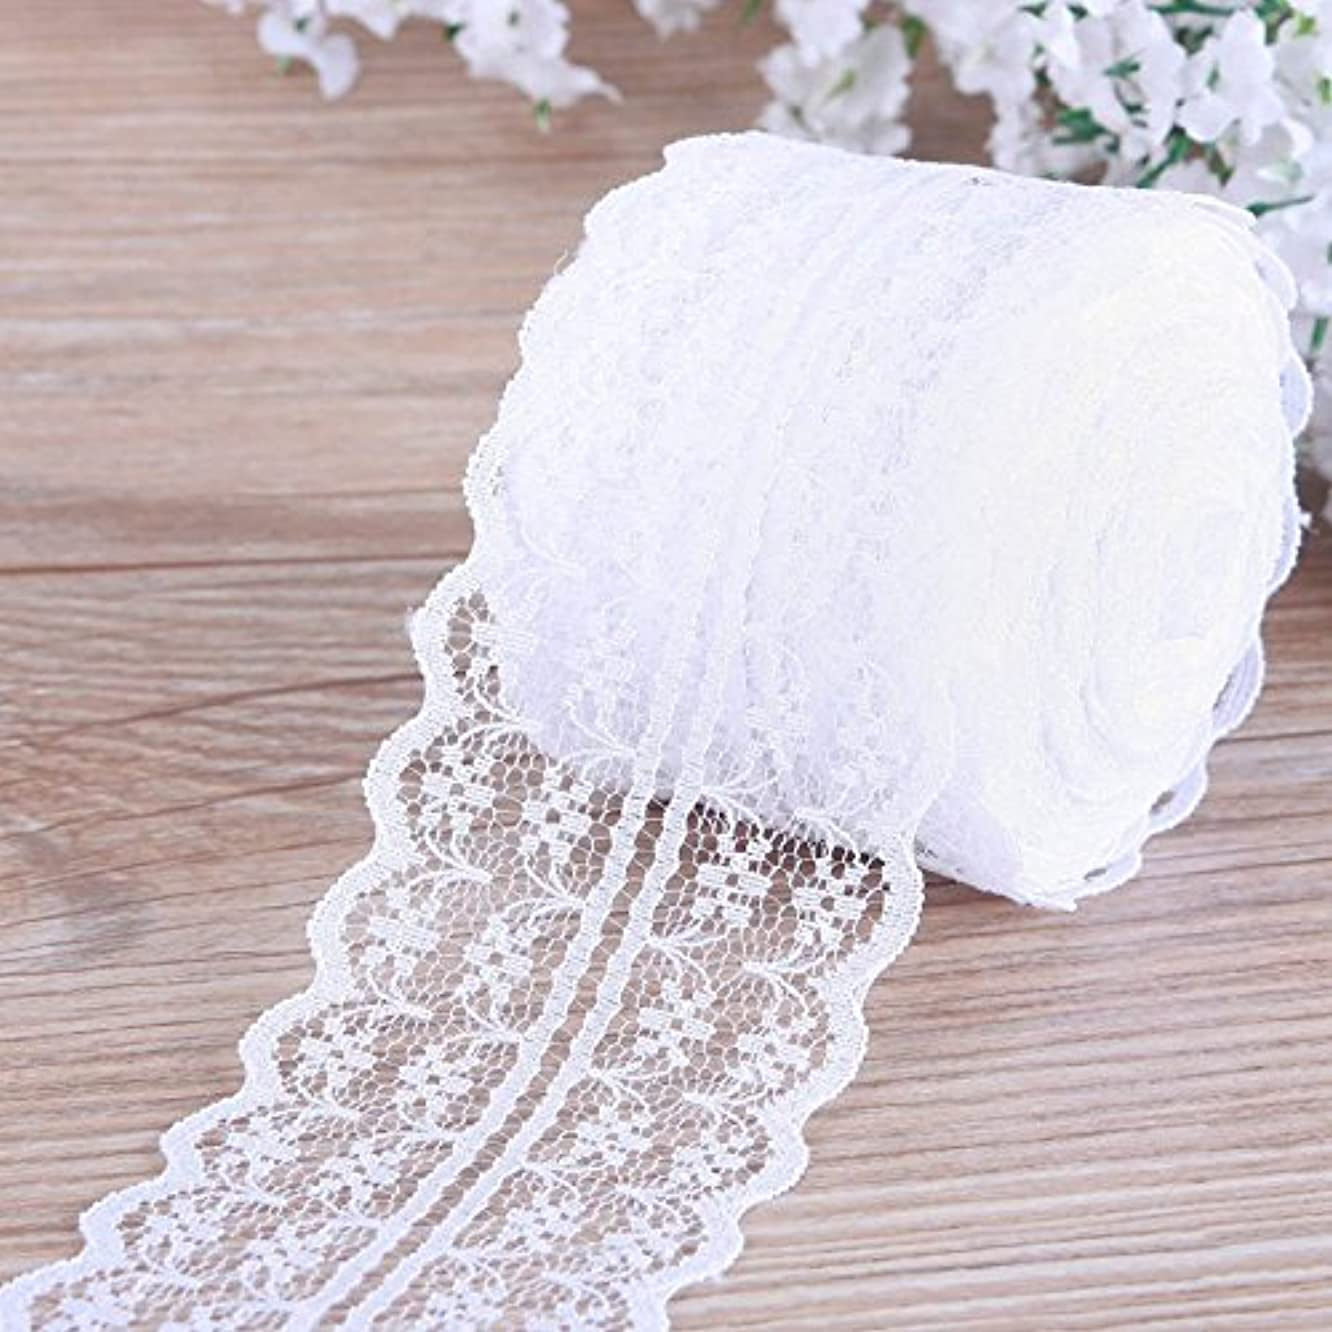 White Lace Roll,Lace Ribbon,Vintage Style Scalloped Edge Lace Ribbon DIY for Craft Lace(4.5CM Width 25 Yards)